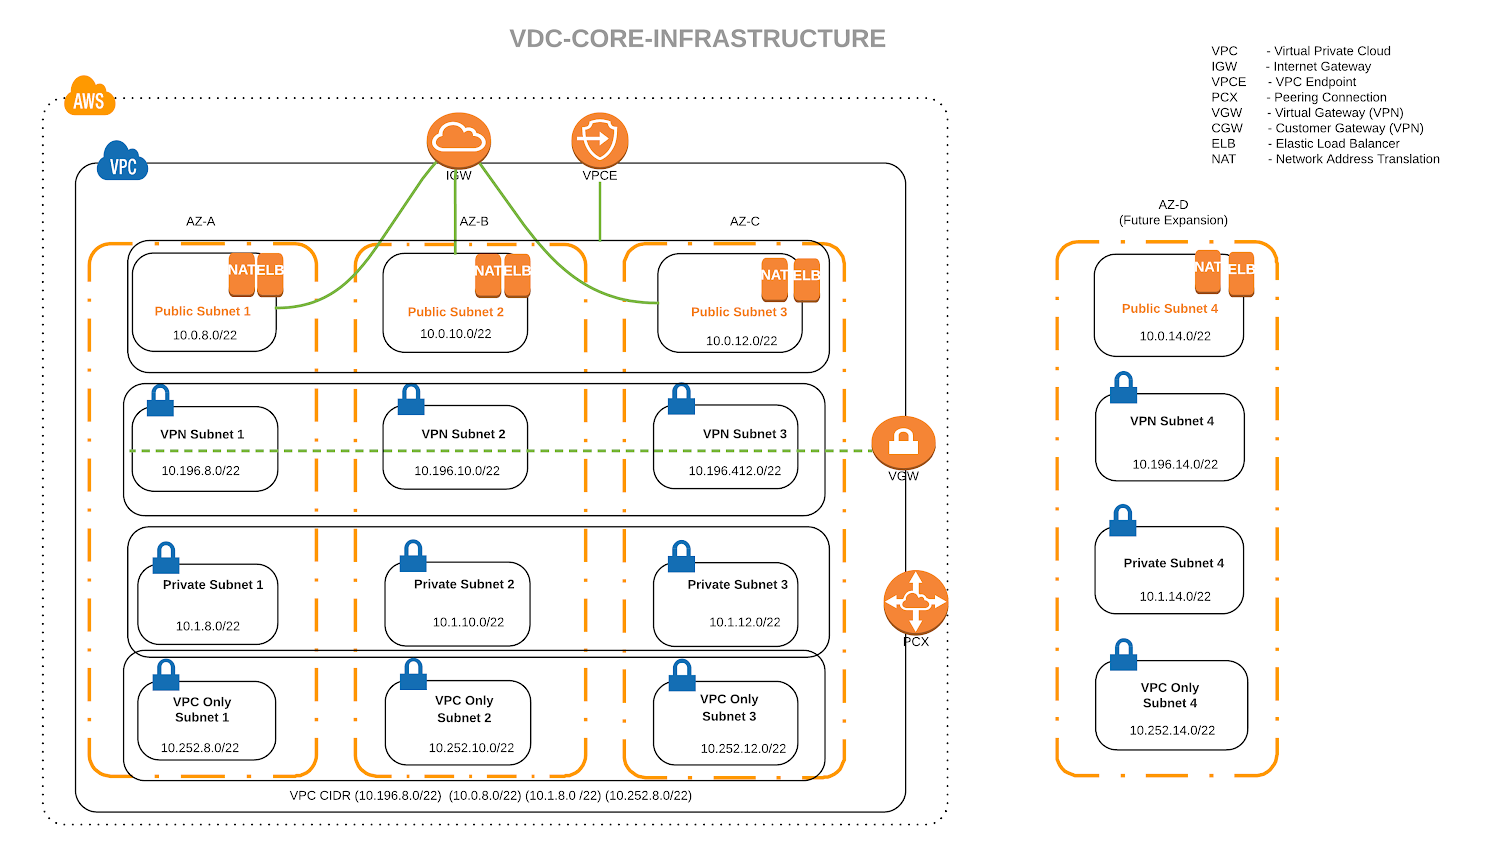 vDC core infrastructure graphic